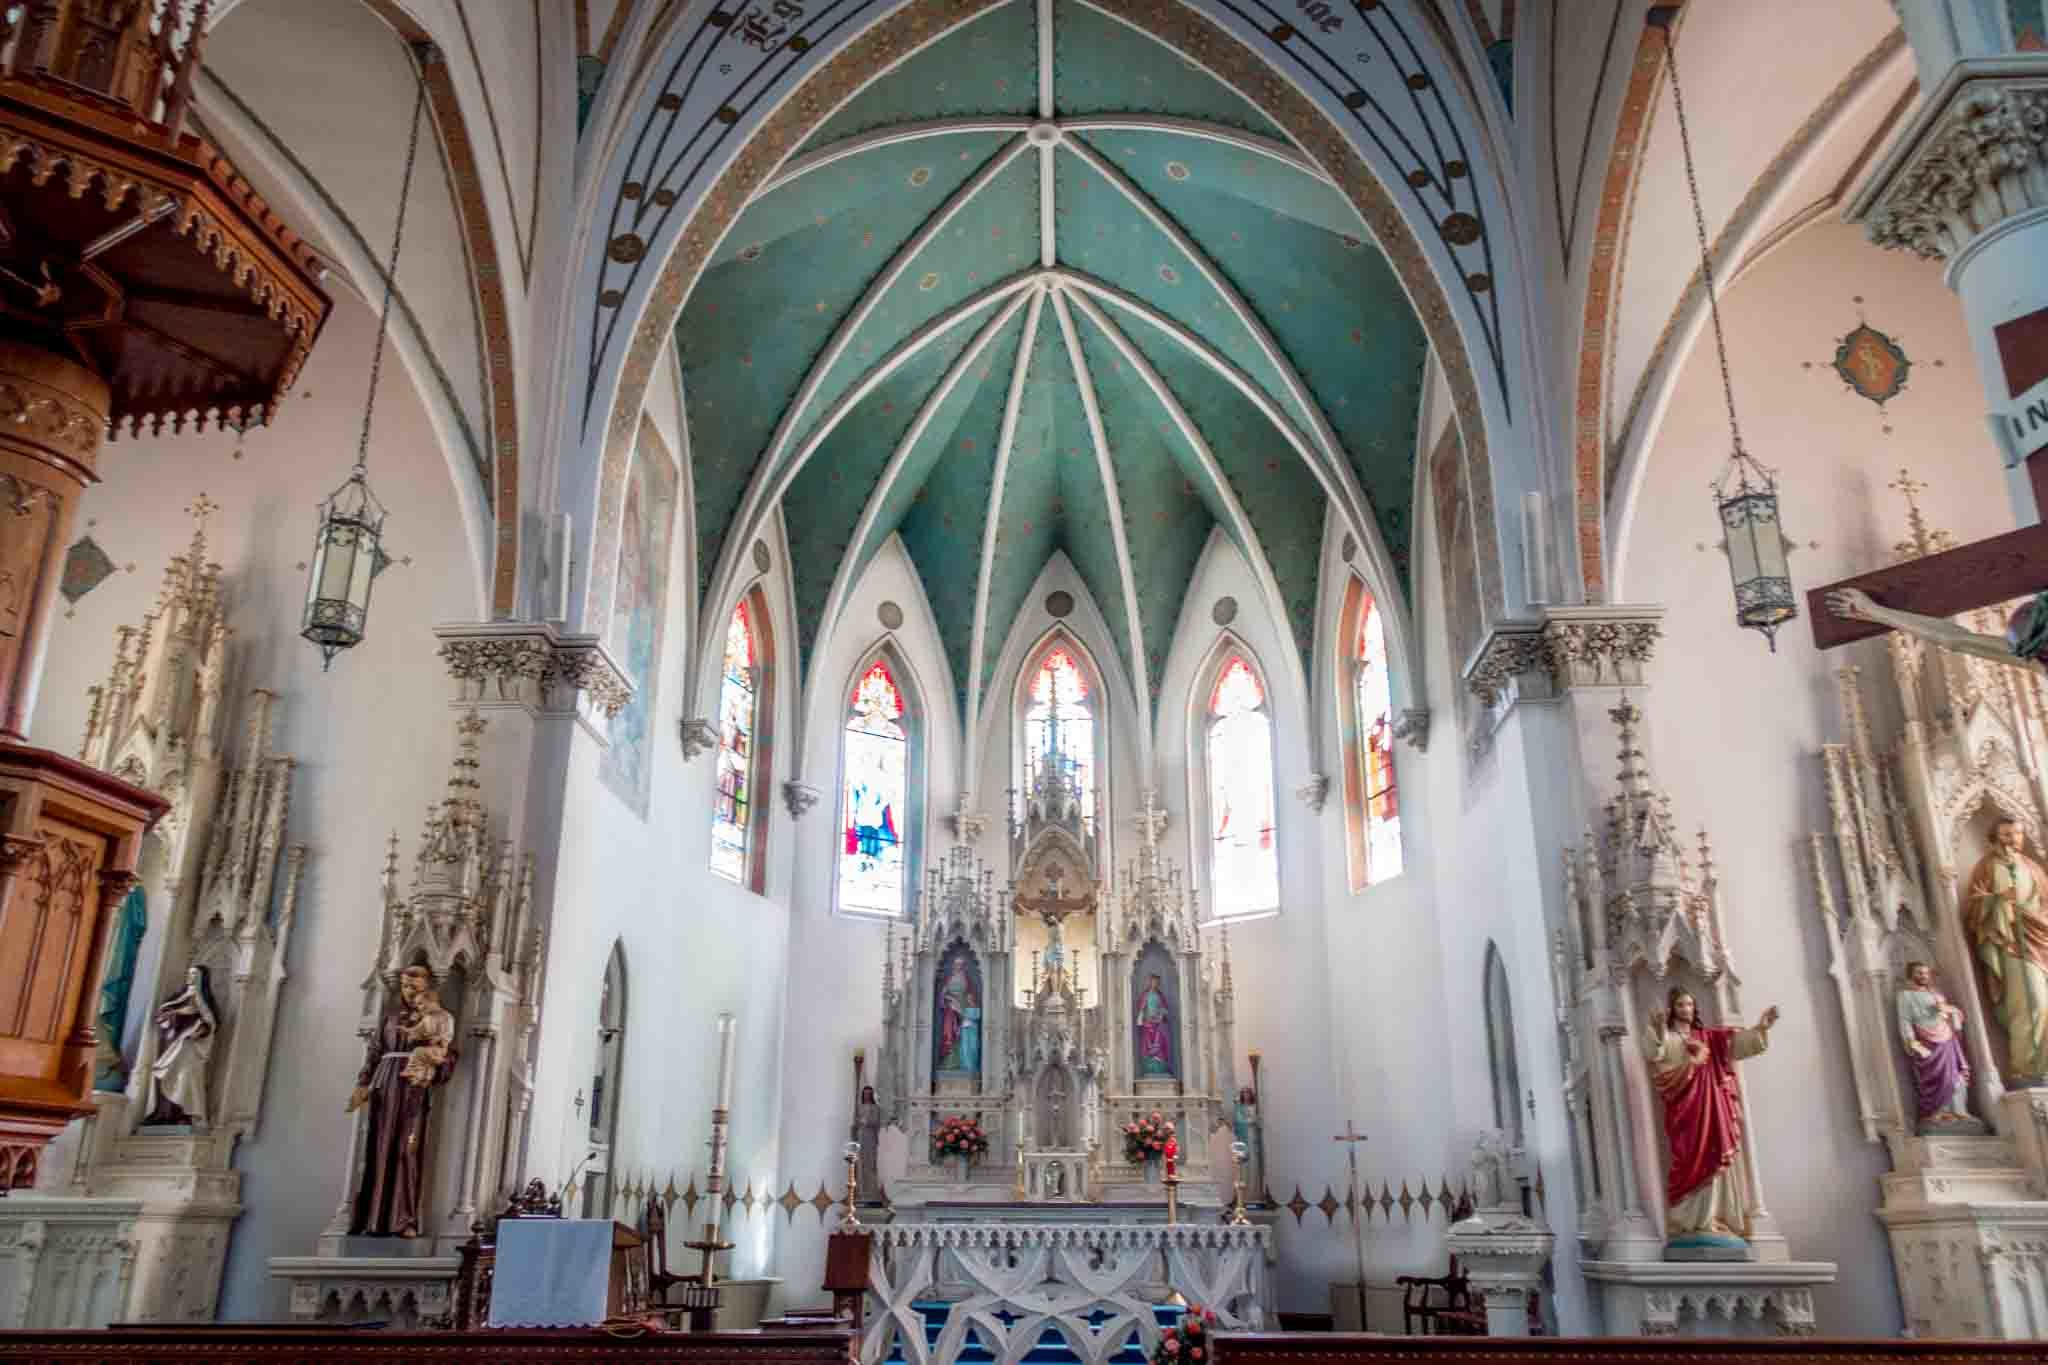 The sanctuary of the painted church, St. Marys Fredericksburg TX